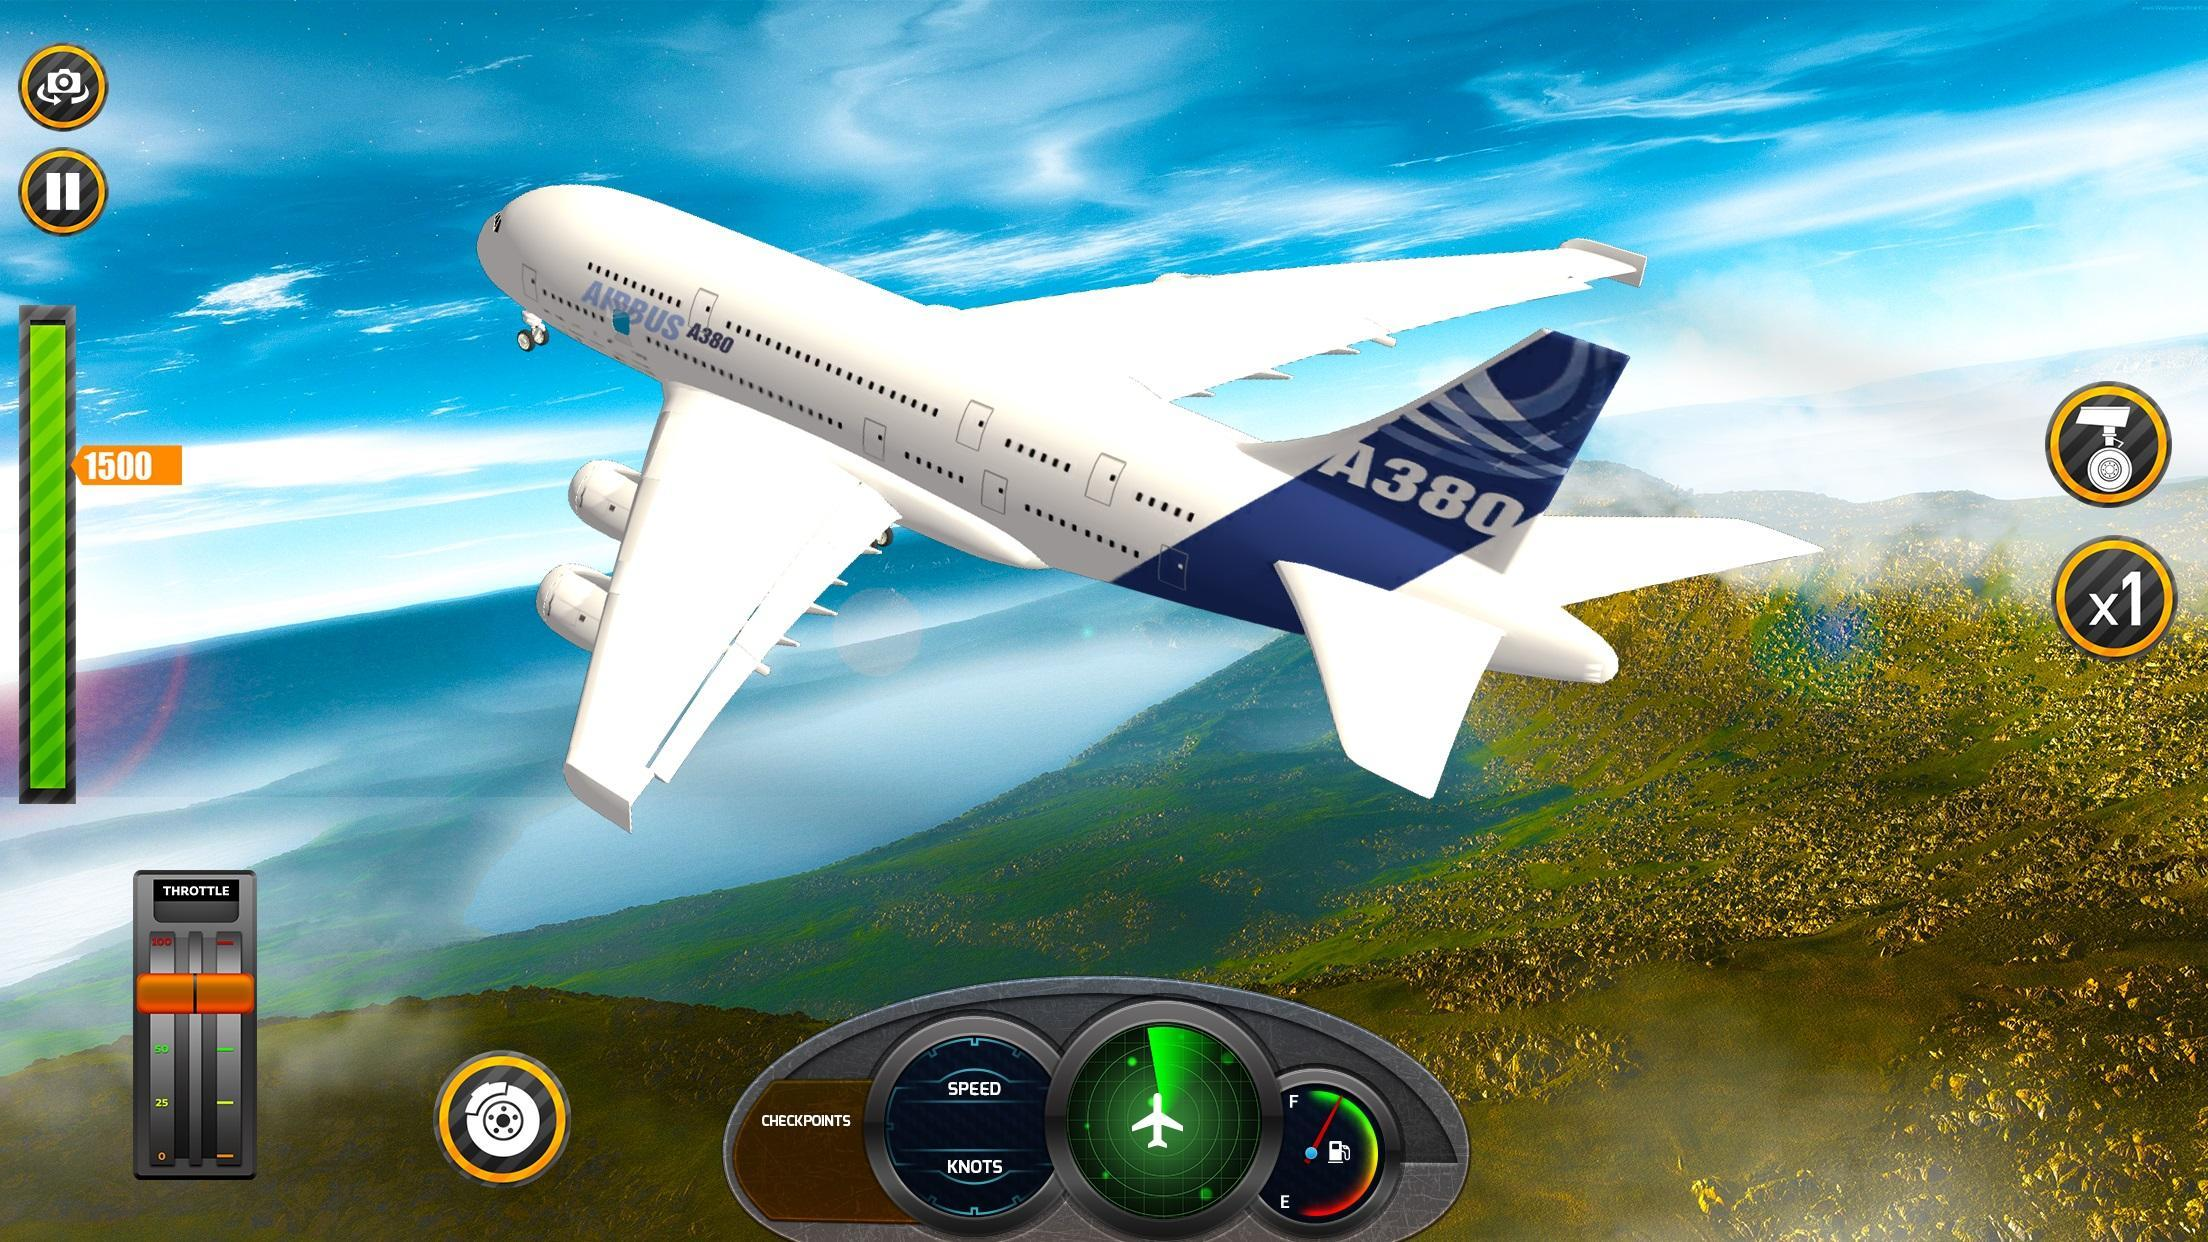 Airplane Real Flight Simulator 2020 Plane Games 5.4 Screenshot 13